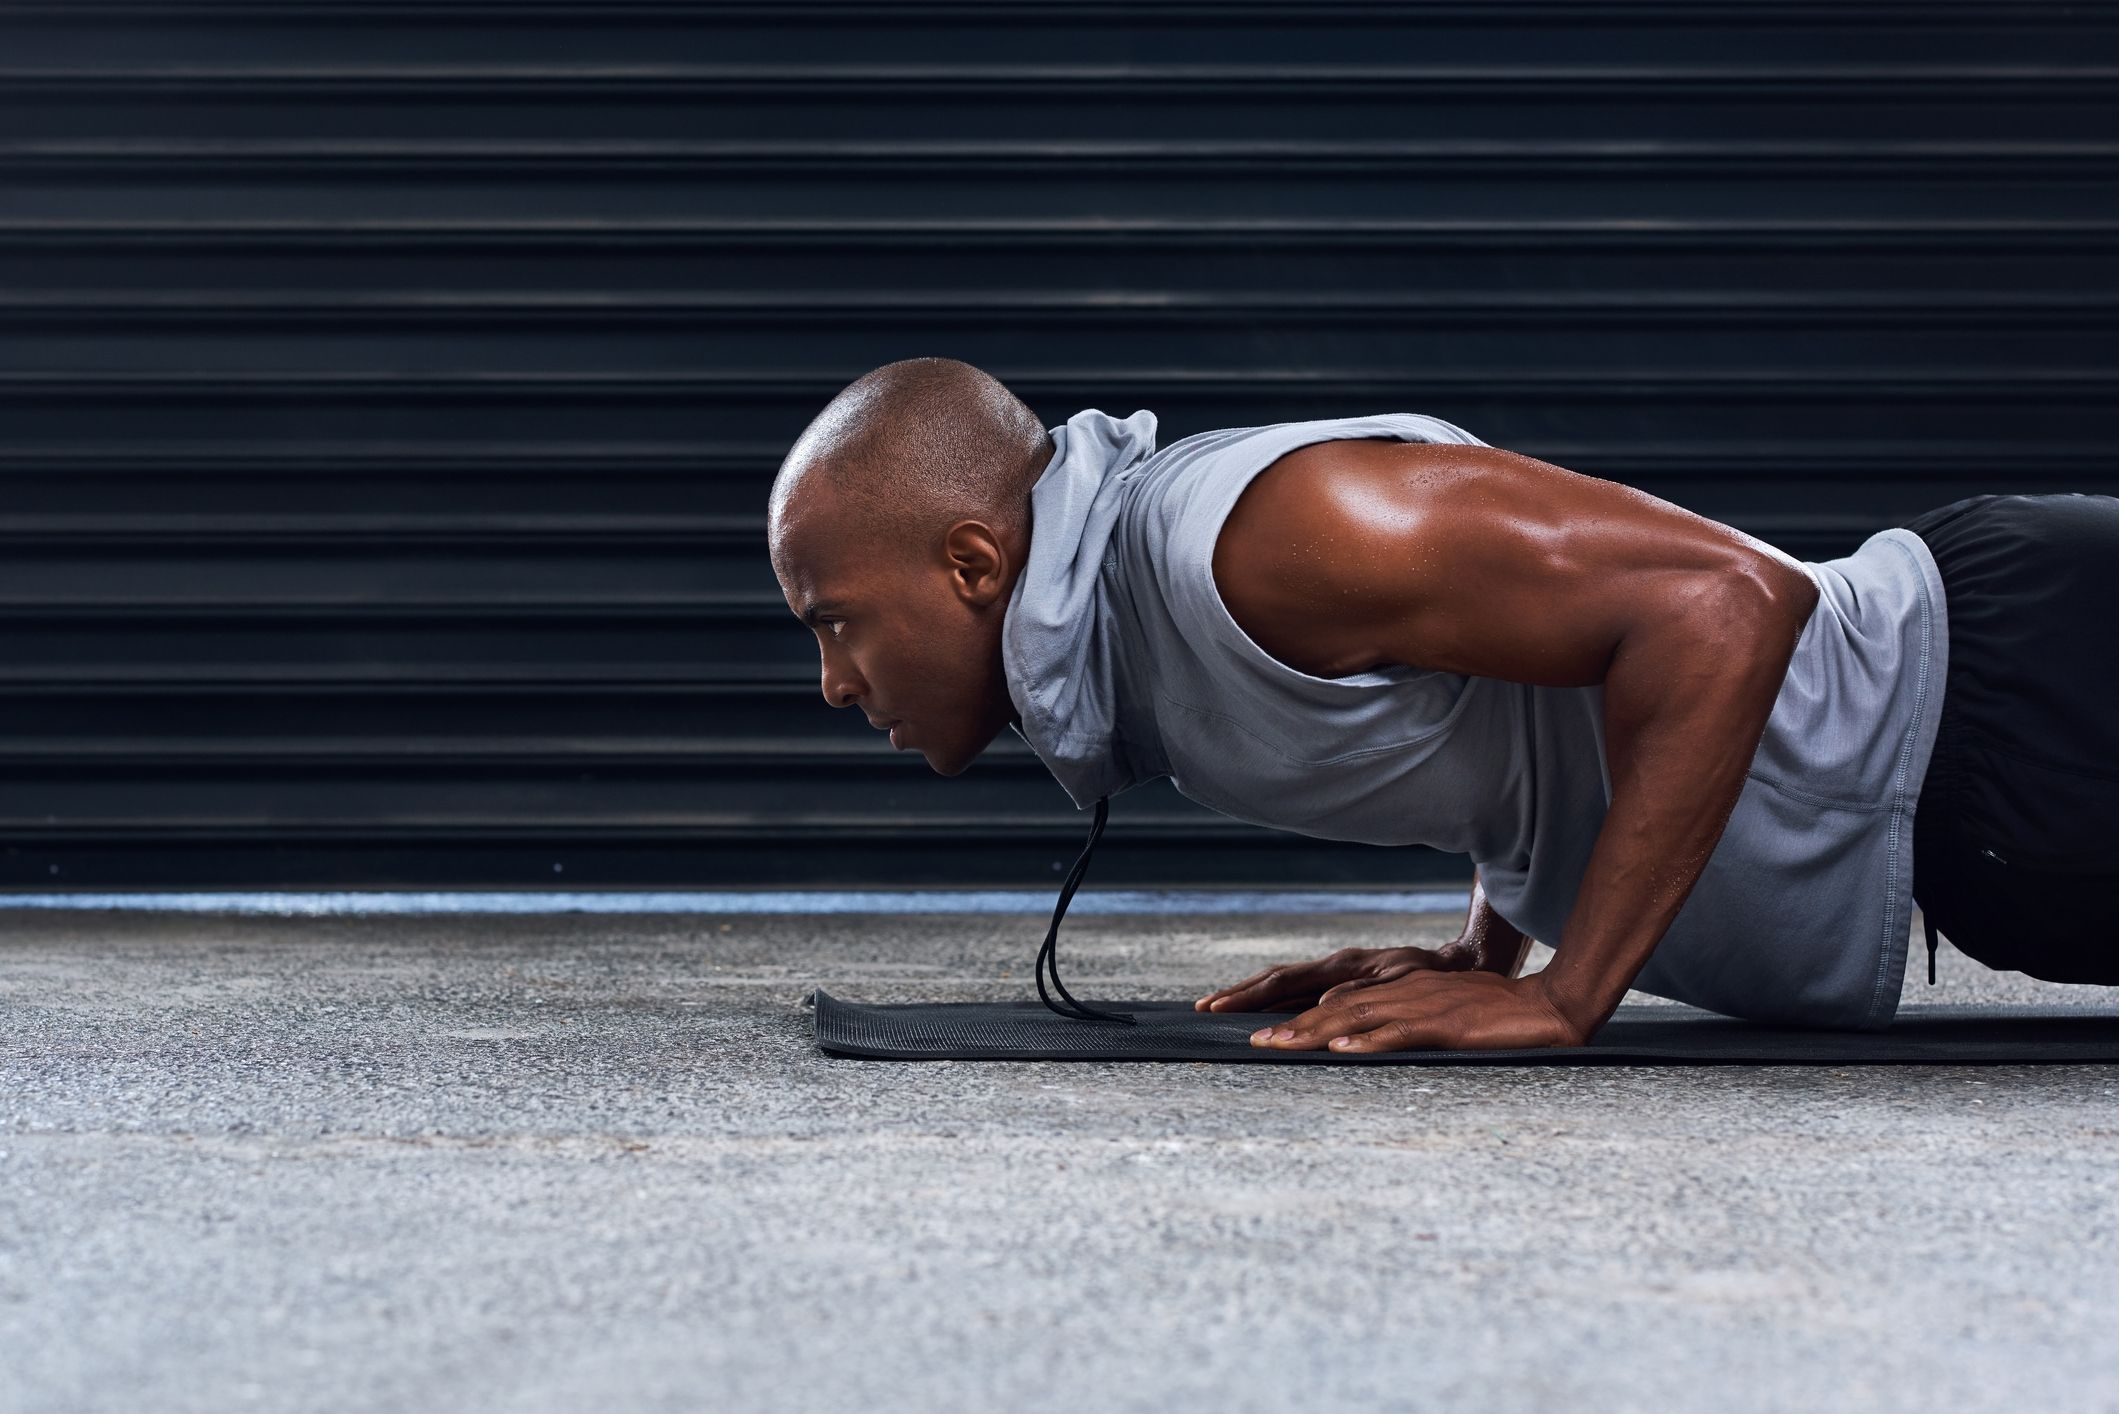 Try This Intense Pushup Challenge Anywhere